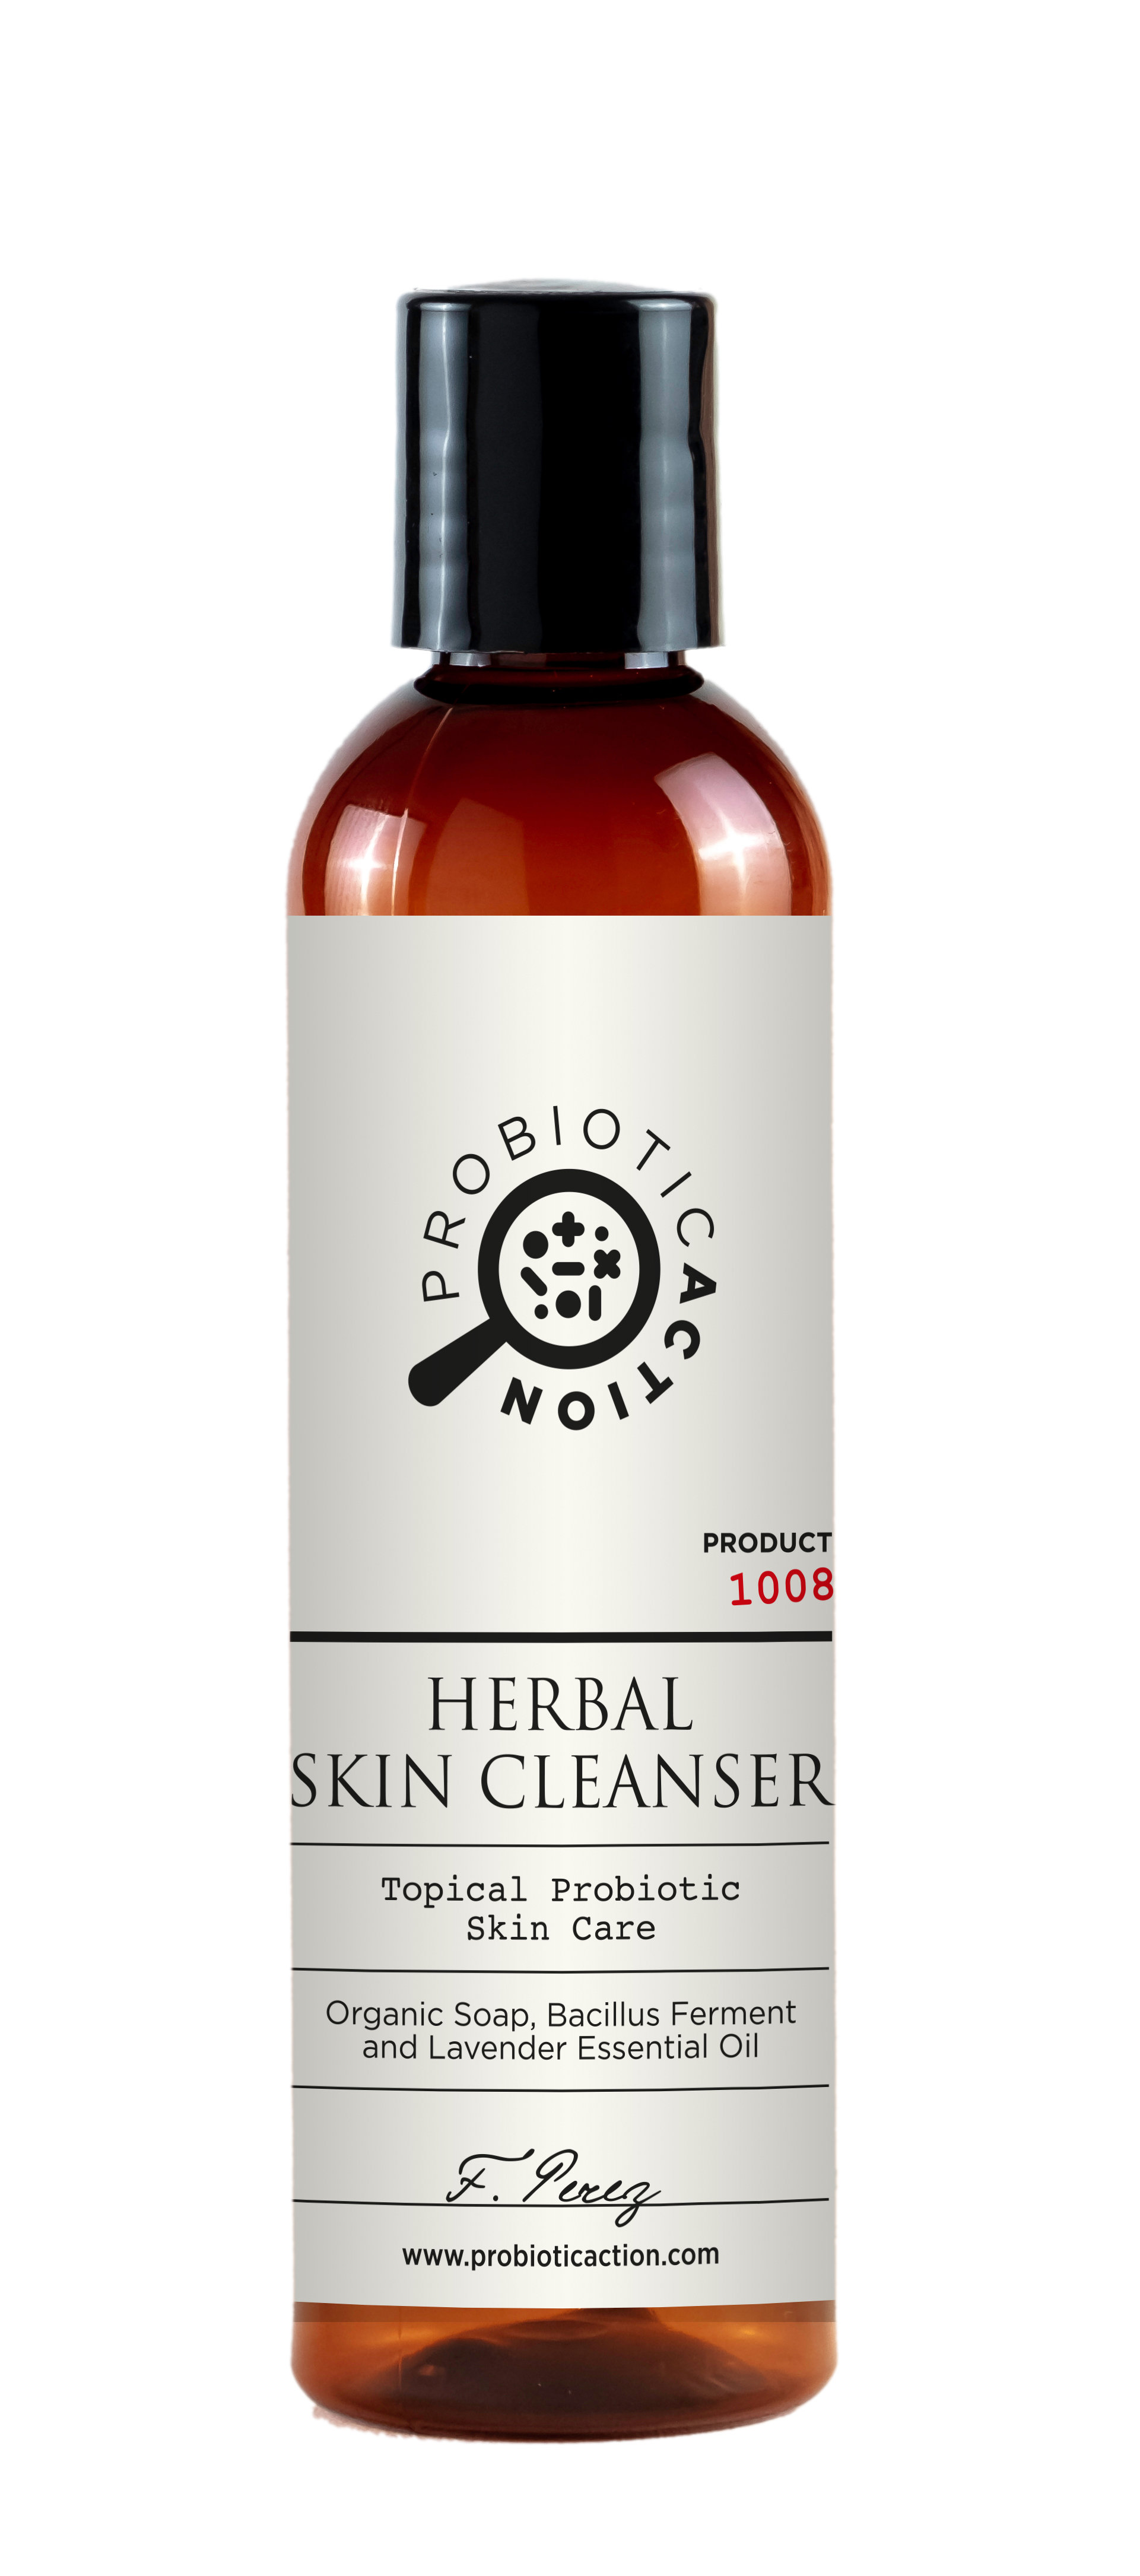 Pack of 2 - Herbal Skin Cleanser - Topical Probiotic Skin Care. Deeply Purifying. Totally Organic. 1008-P2